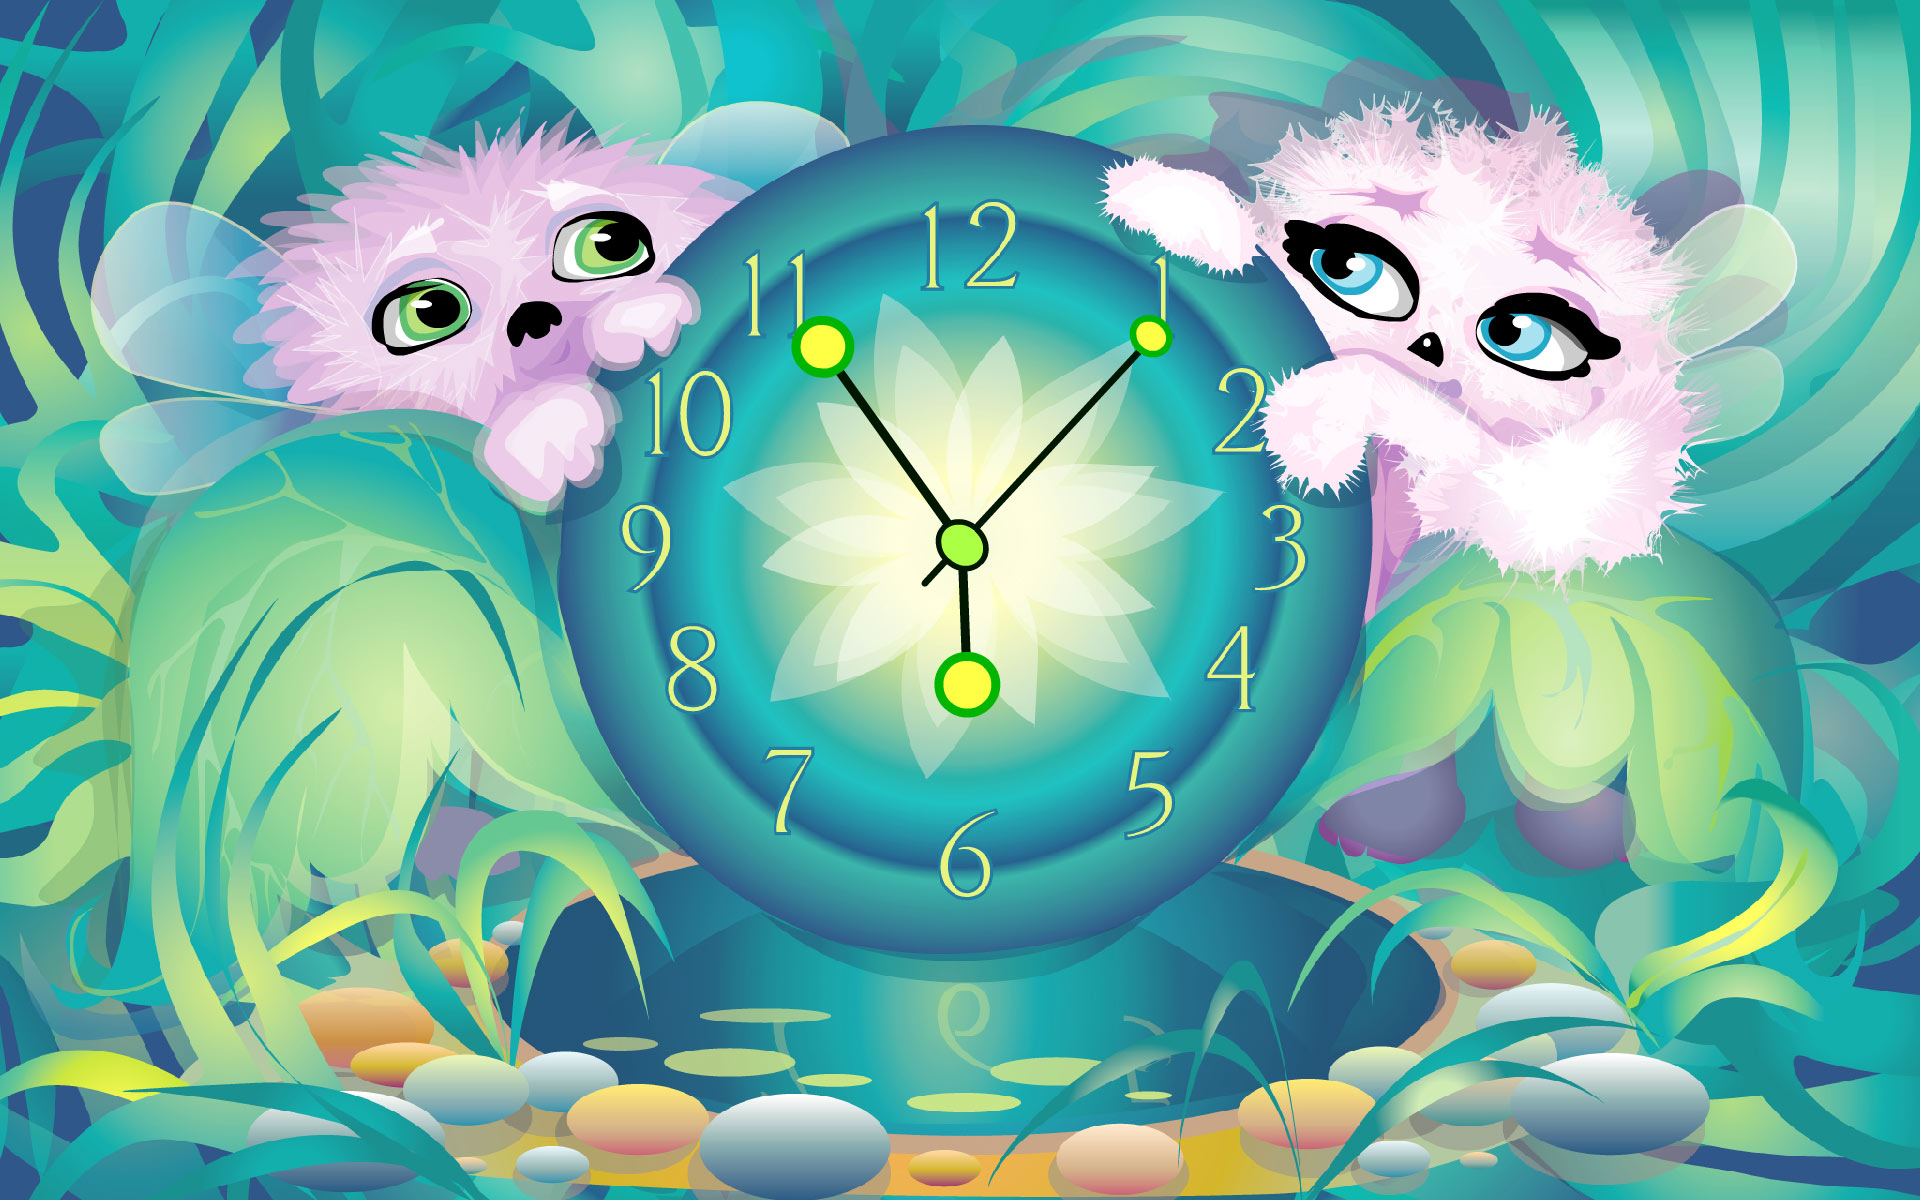 Alien Pets Clock screensaver   download screensaver Get a 1920x1200